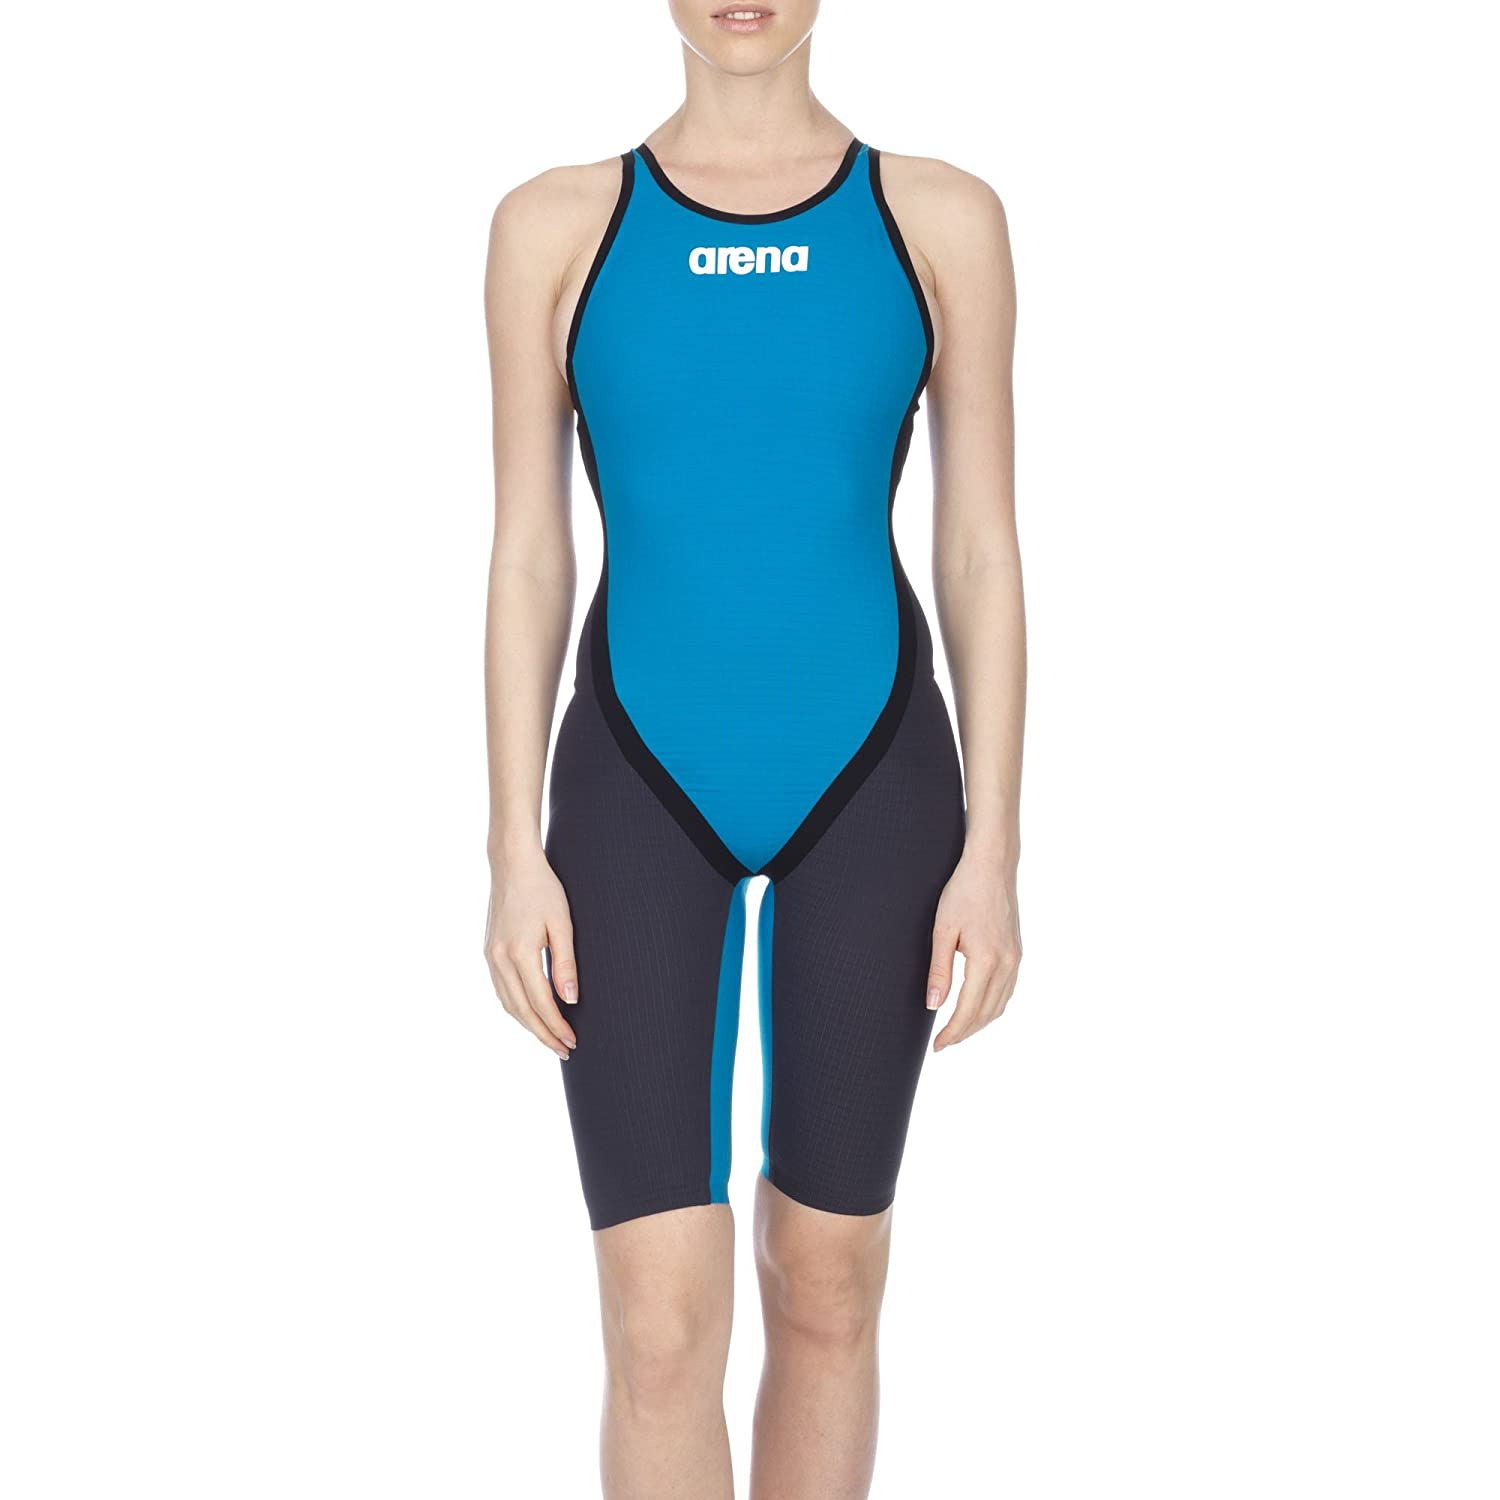 Arena 1A318 Women's Open Back Powerskin Carbon Flex Swimsuit